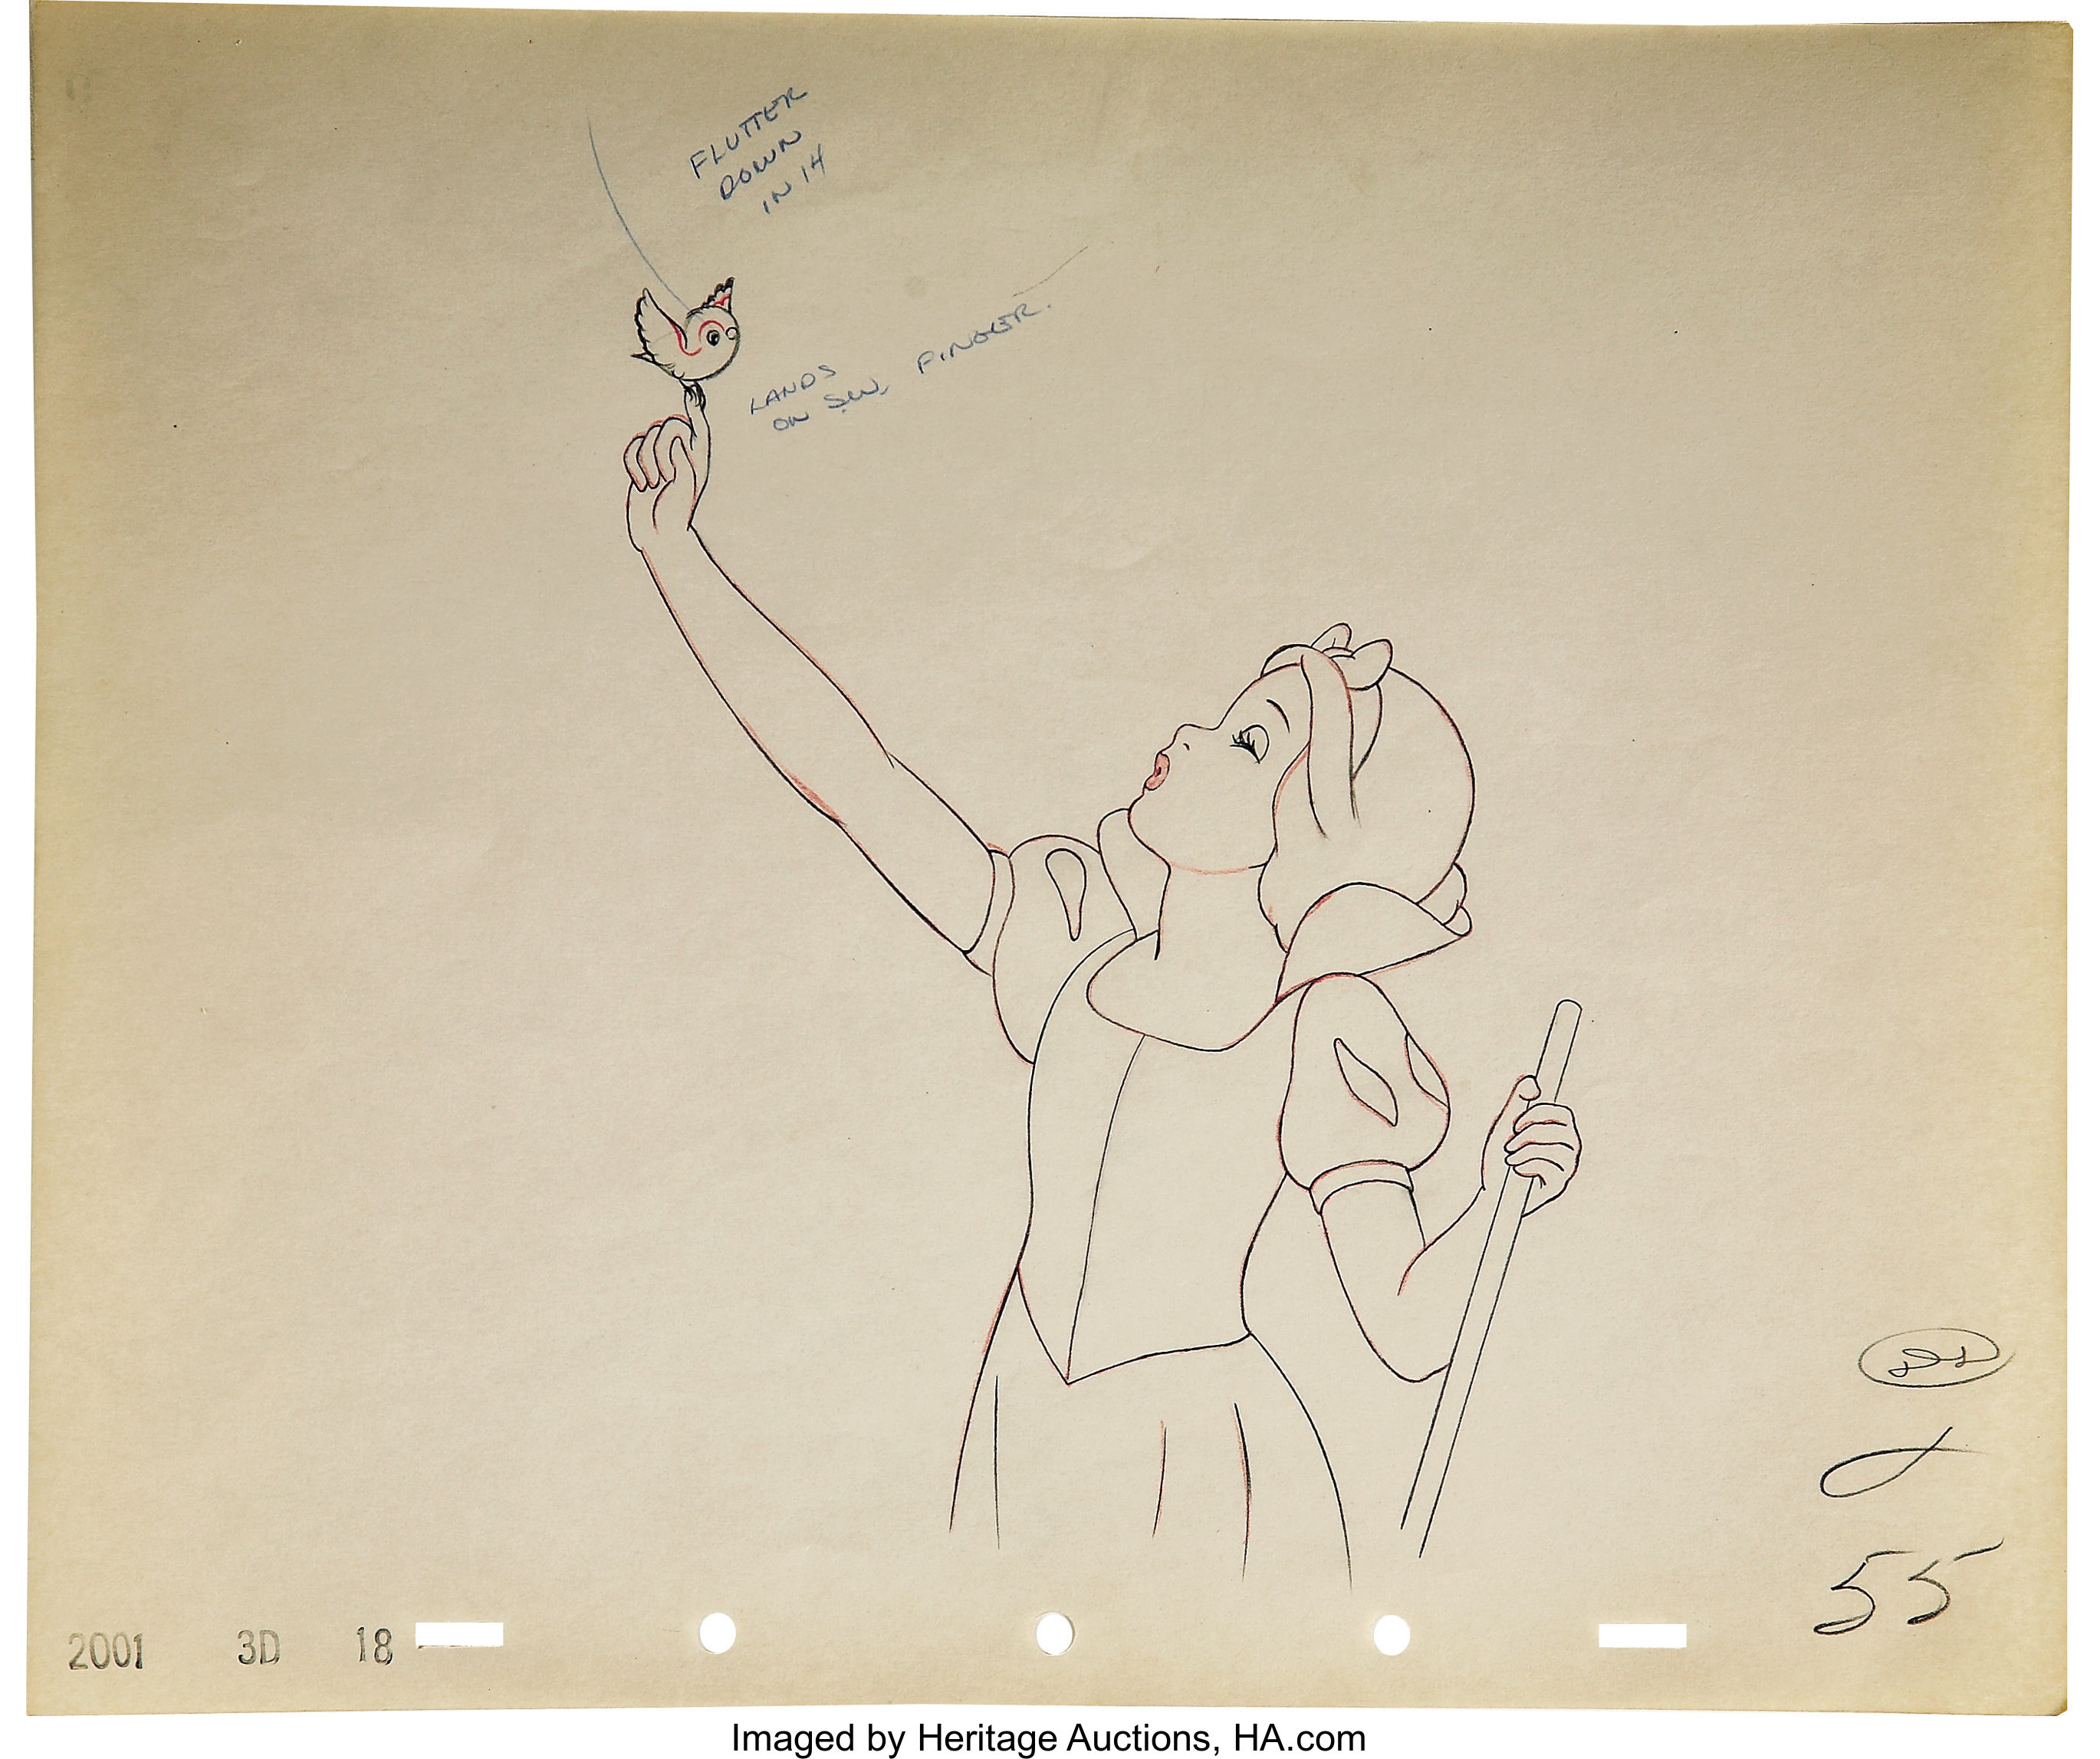 Snow white and the seven dwarfs pencil animation drawing original